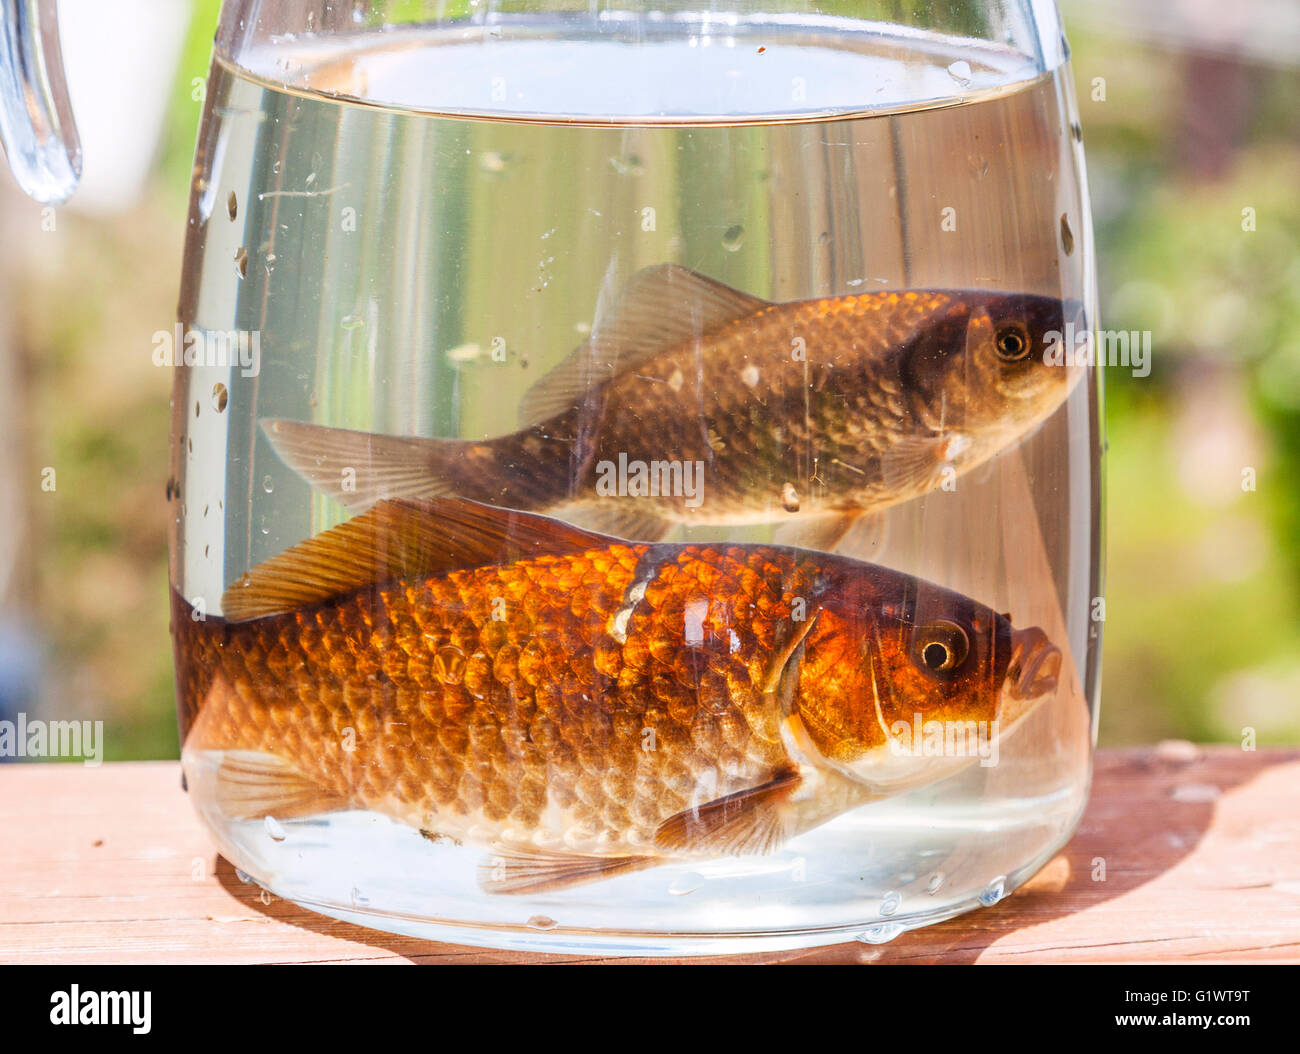 goldfish in a jar - Stock Image